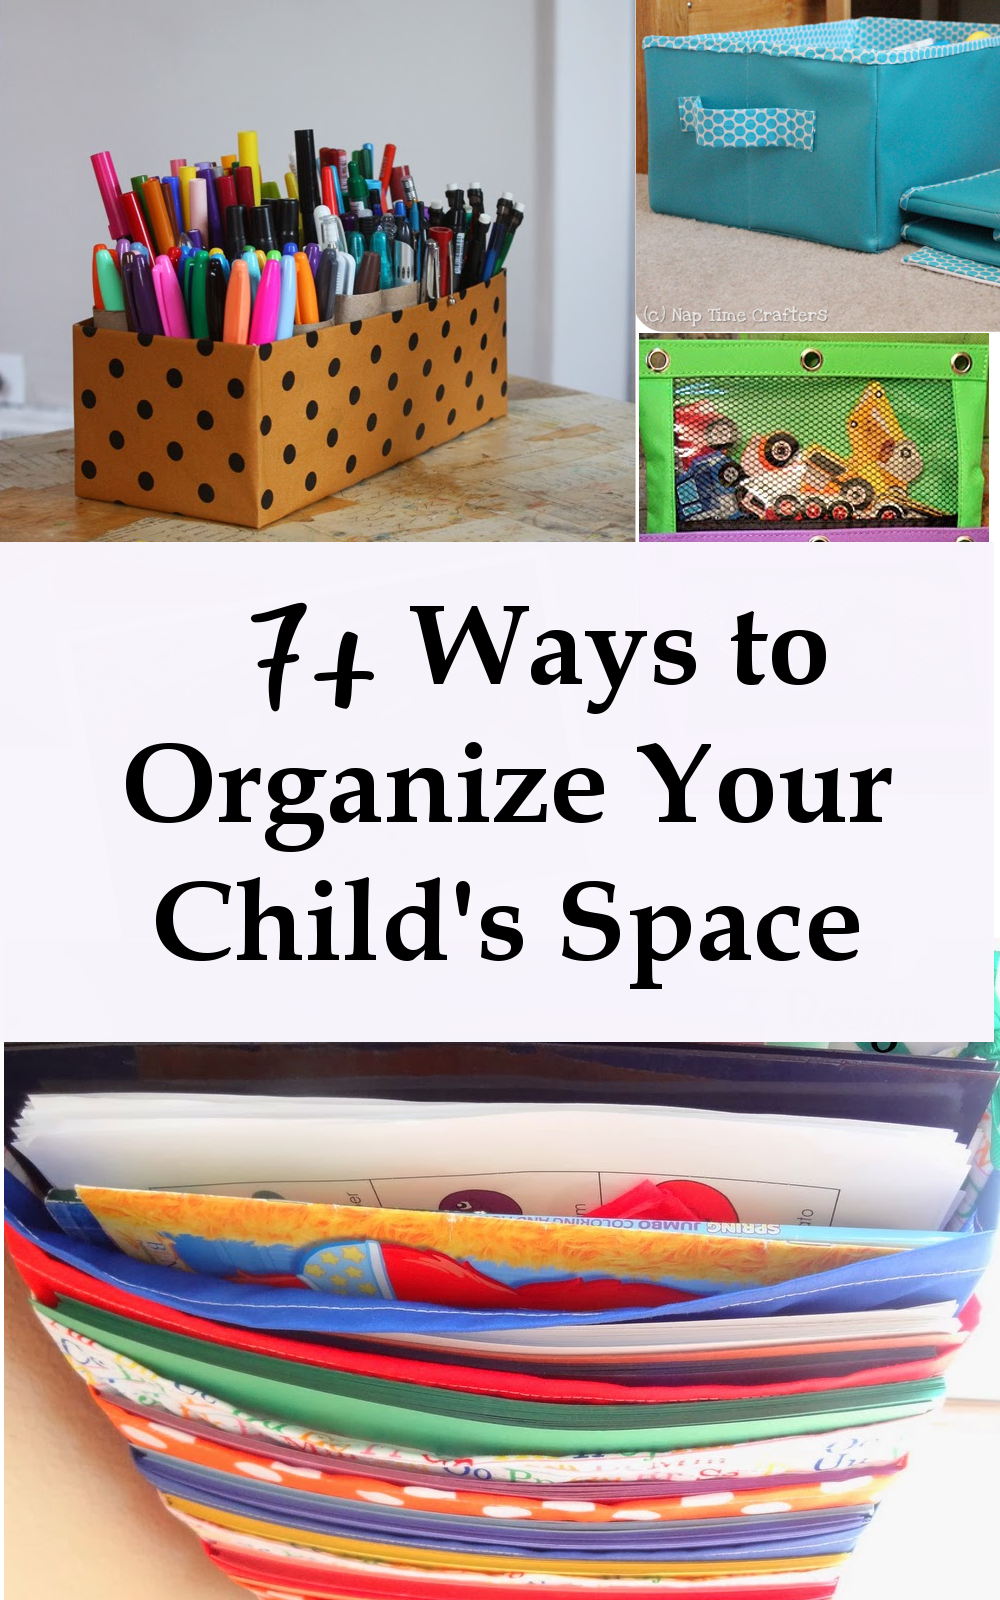 7+ Ways to Organize Your Child's Space